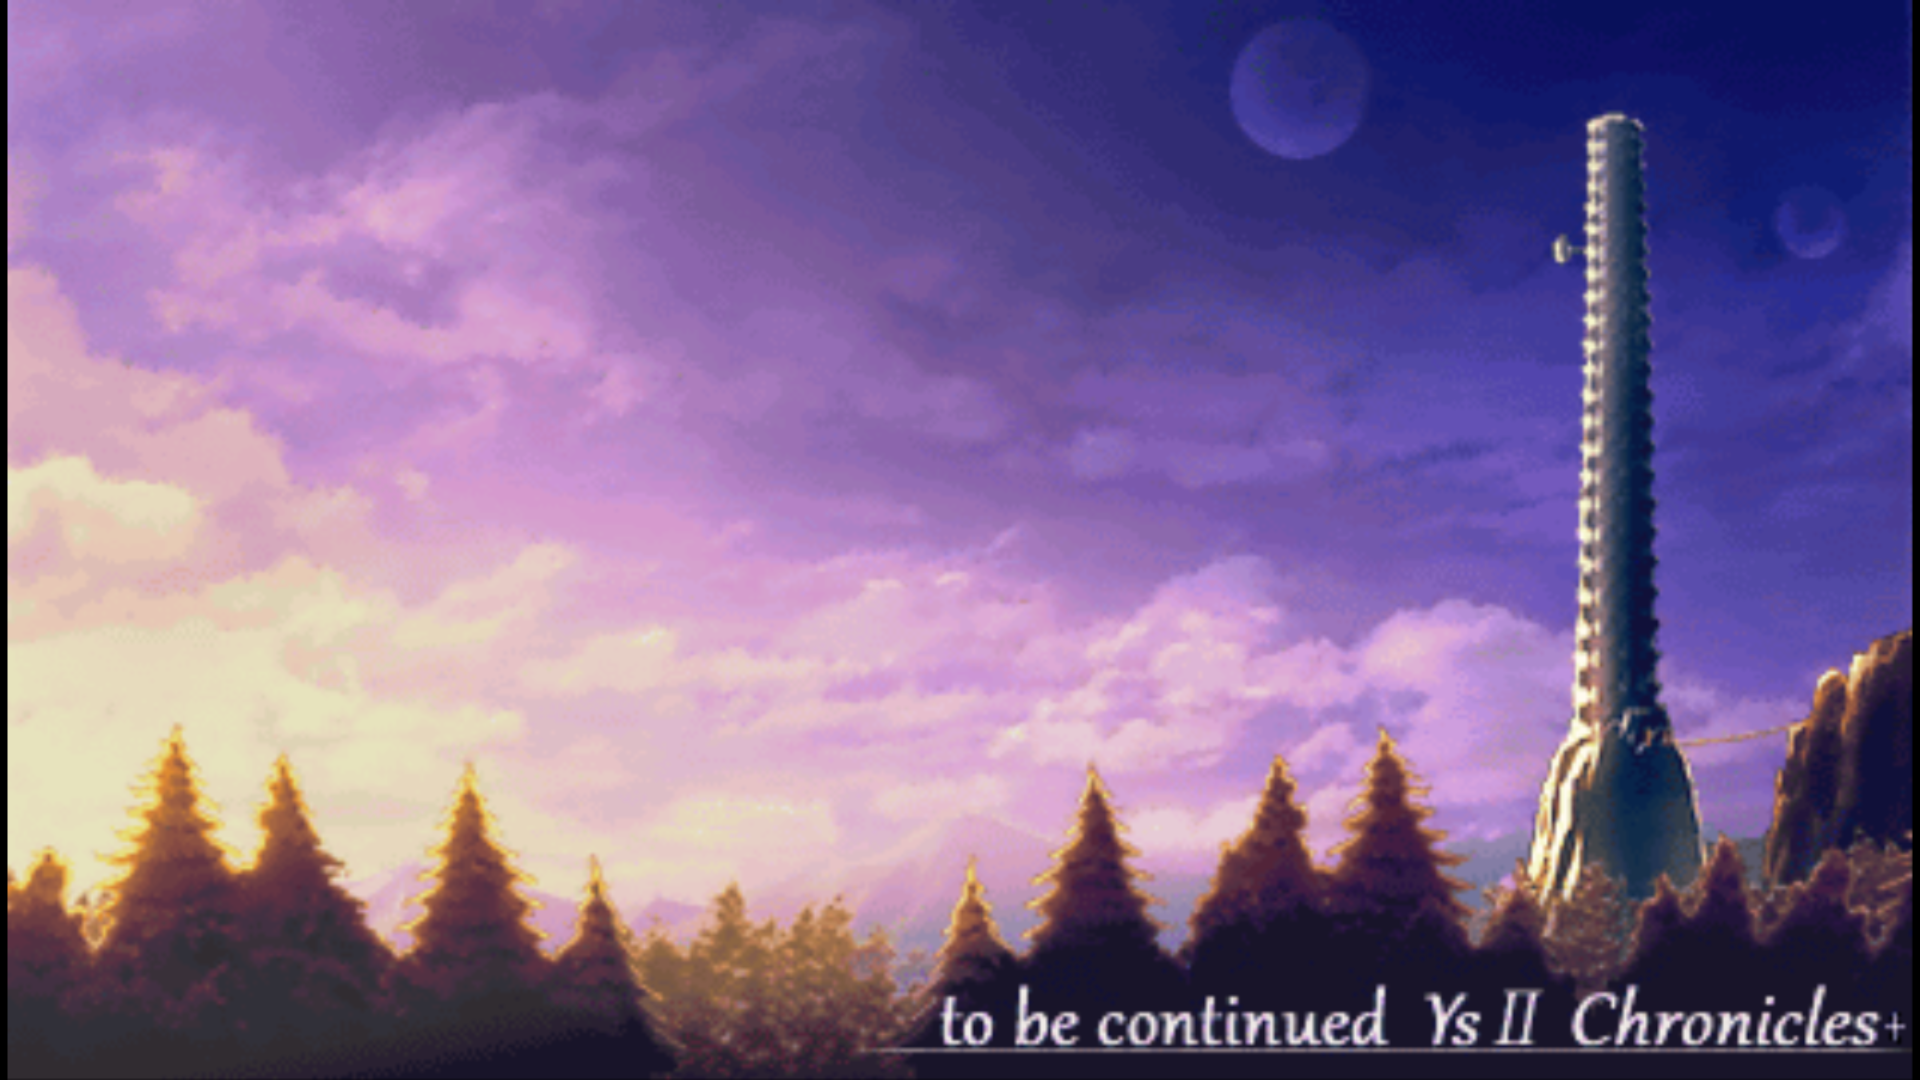 Ys Chronicles+_ Ancient Ys Vanished - Omen (Steam) (GOG) 16.05.2019 14_46_33.png